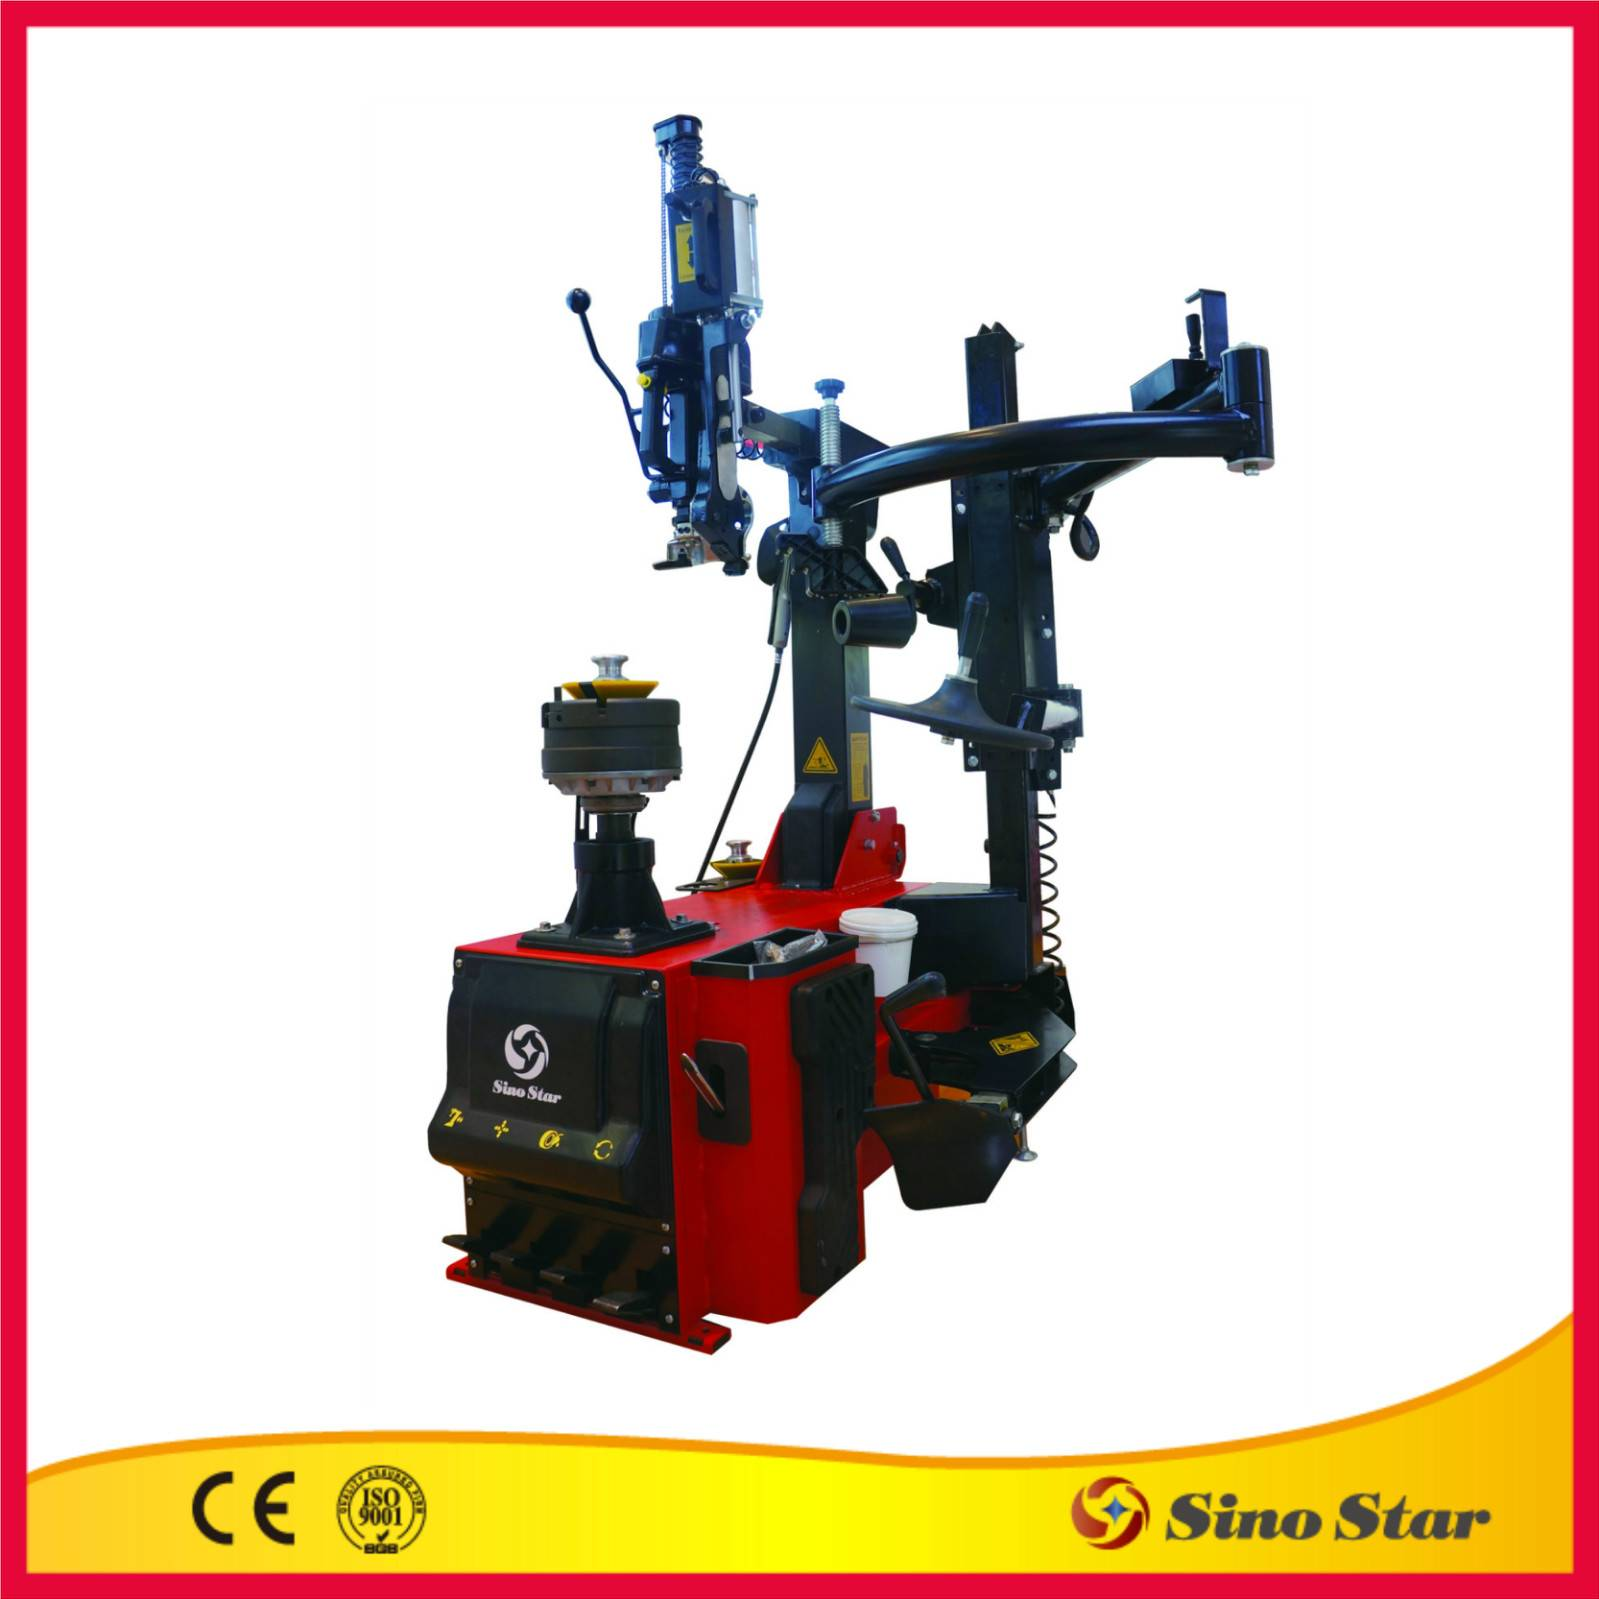 Good quality tire changer(SS-4996)